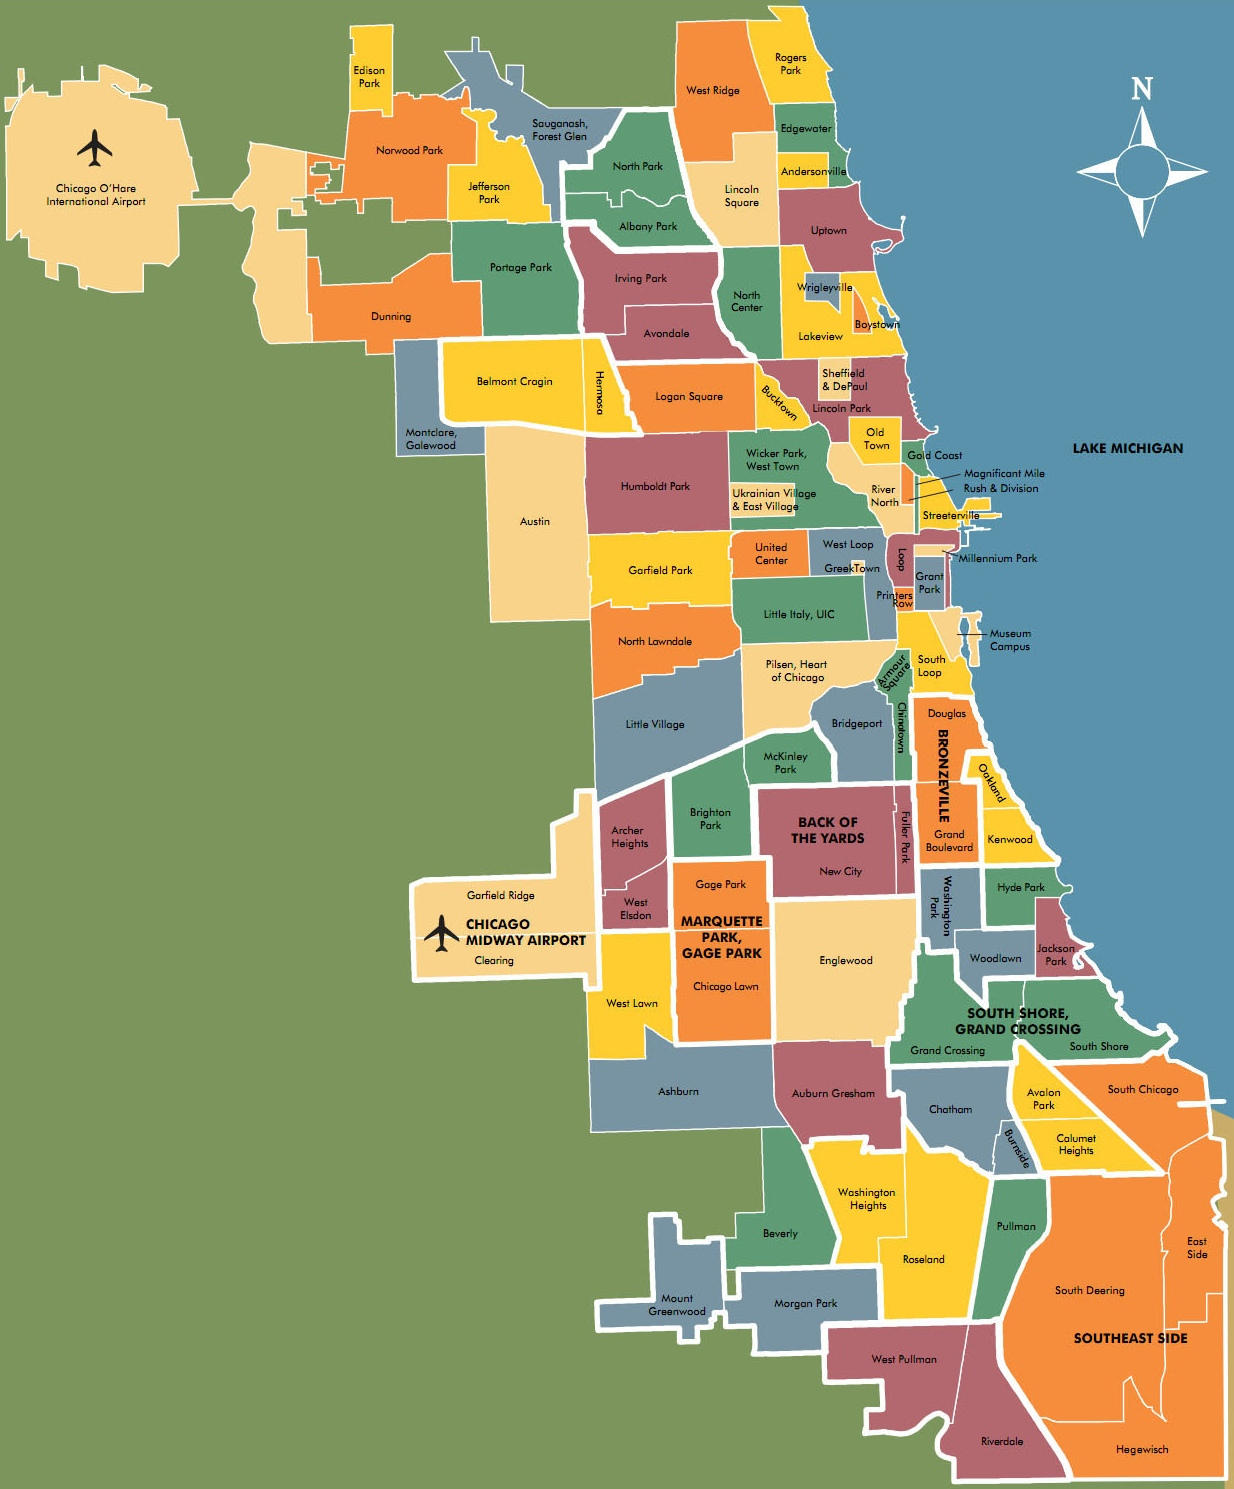 Chicago Il 60613 Mail: Illinois Neighborhood Map